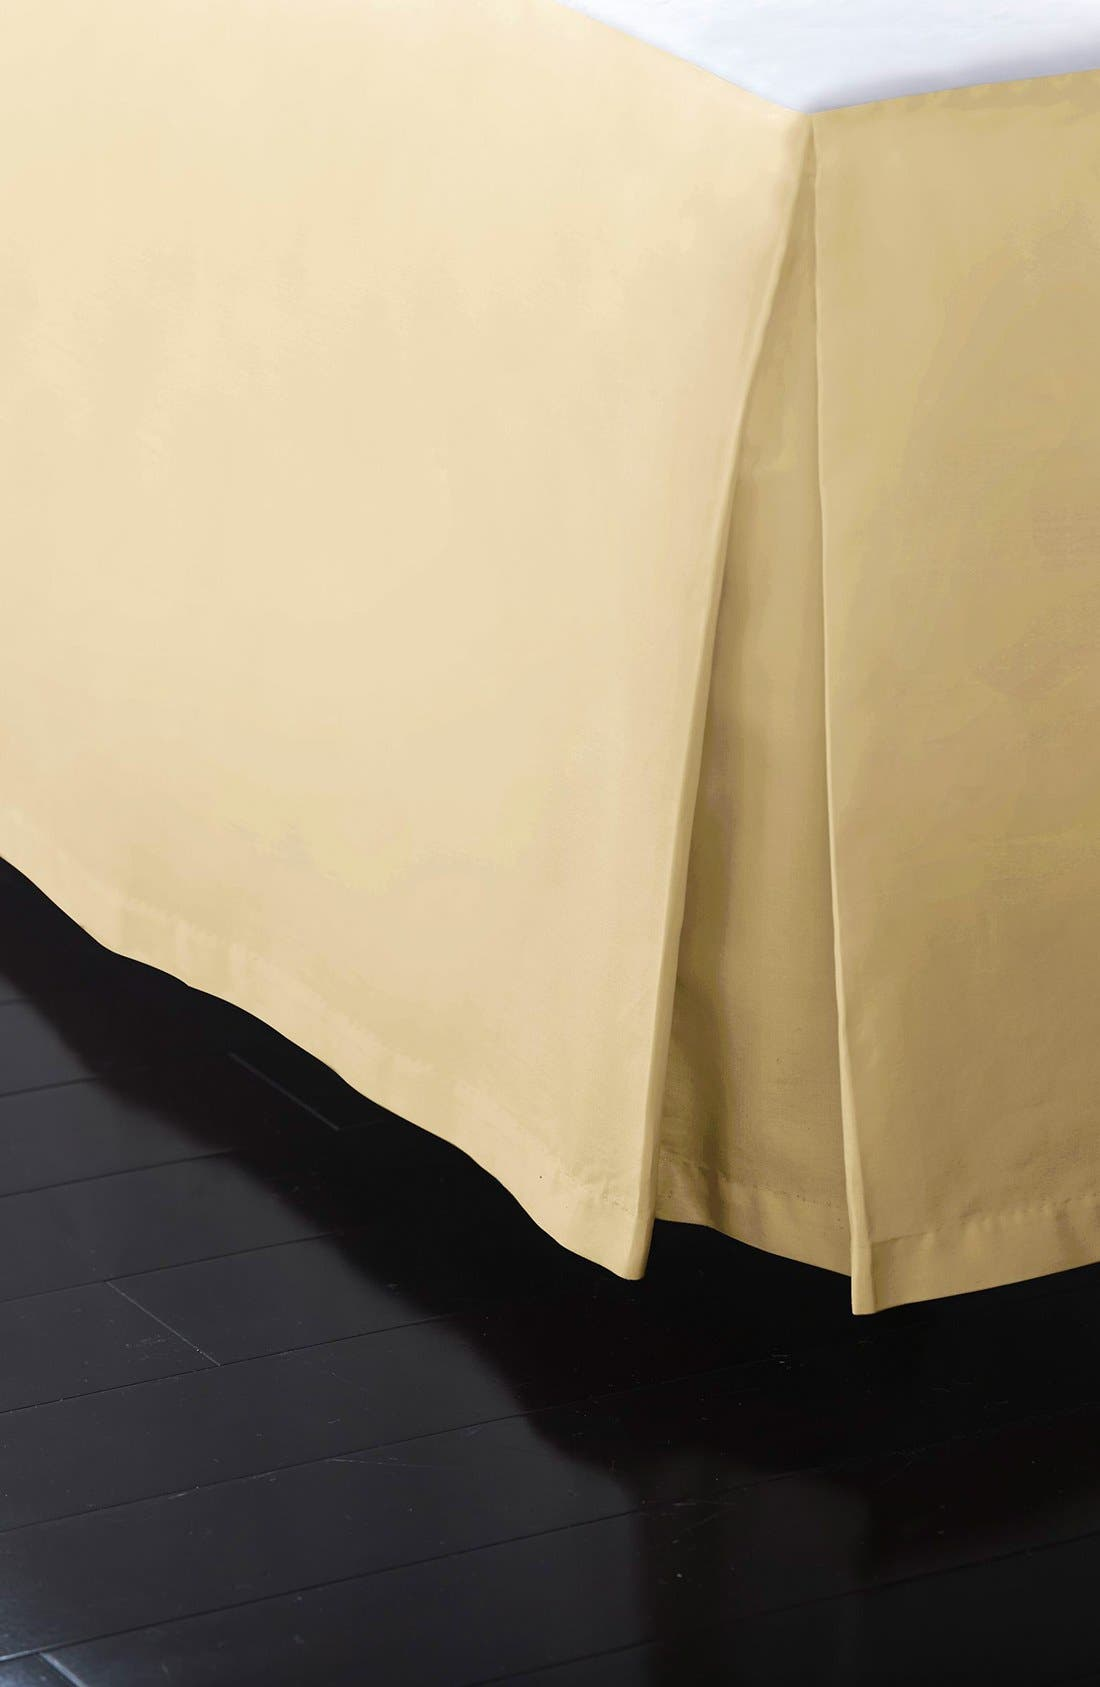 ,                             Donna Karan Collection 'Reflection' 510 Thread Count Bed Skirt,                             Main thumbnail 1, color,                             GOLD DUST